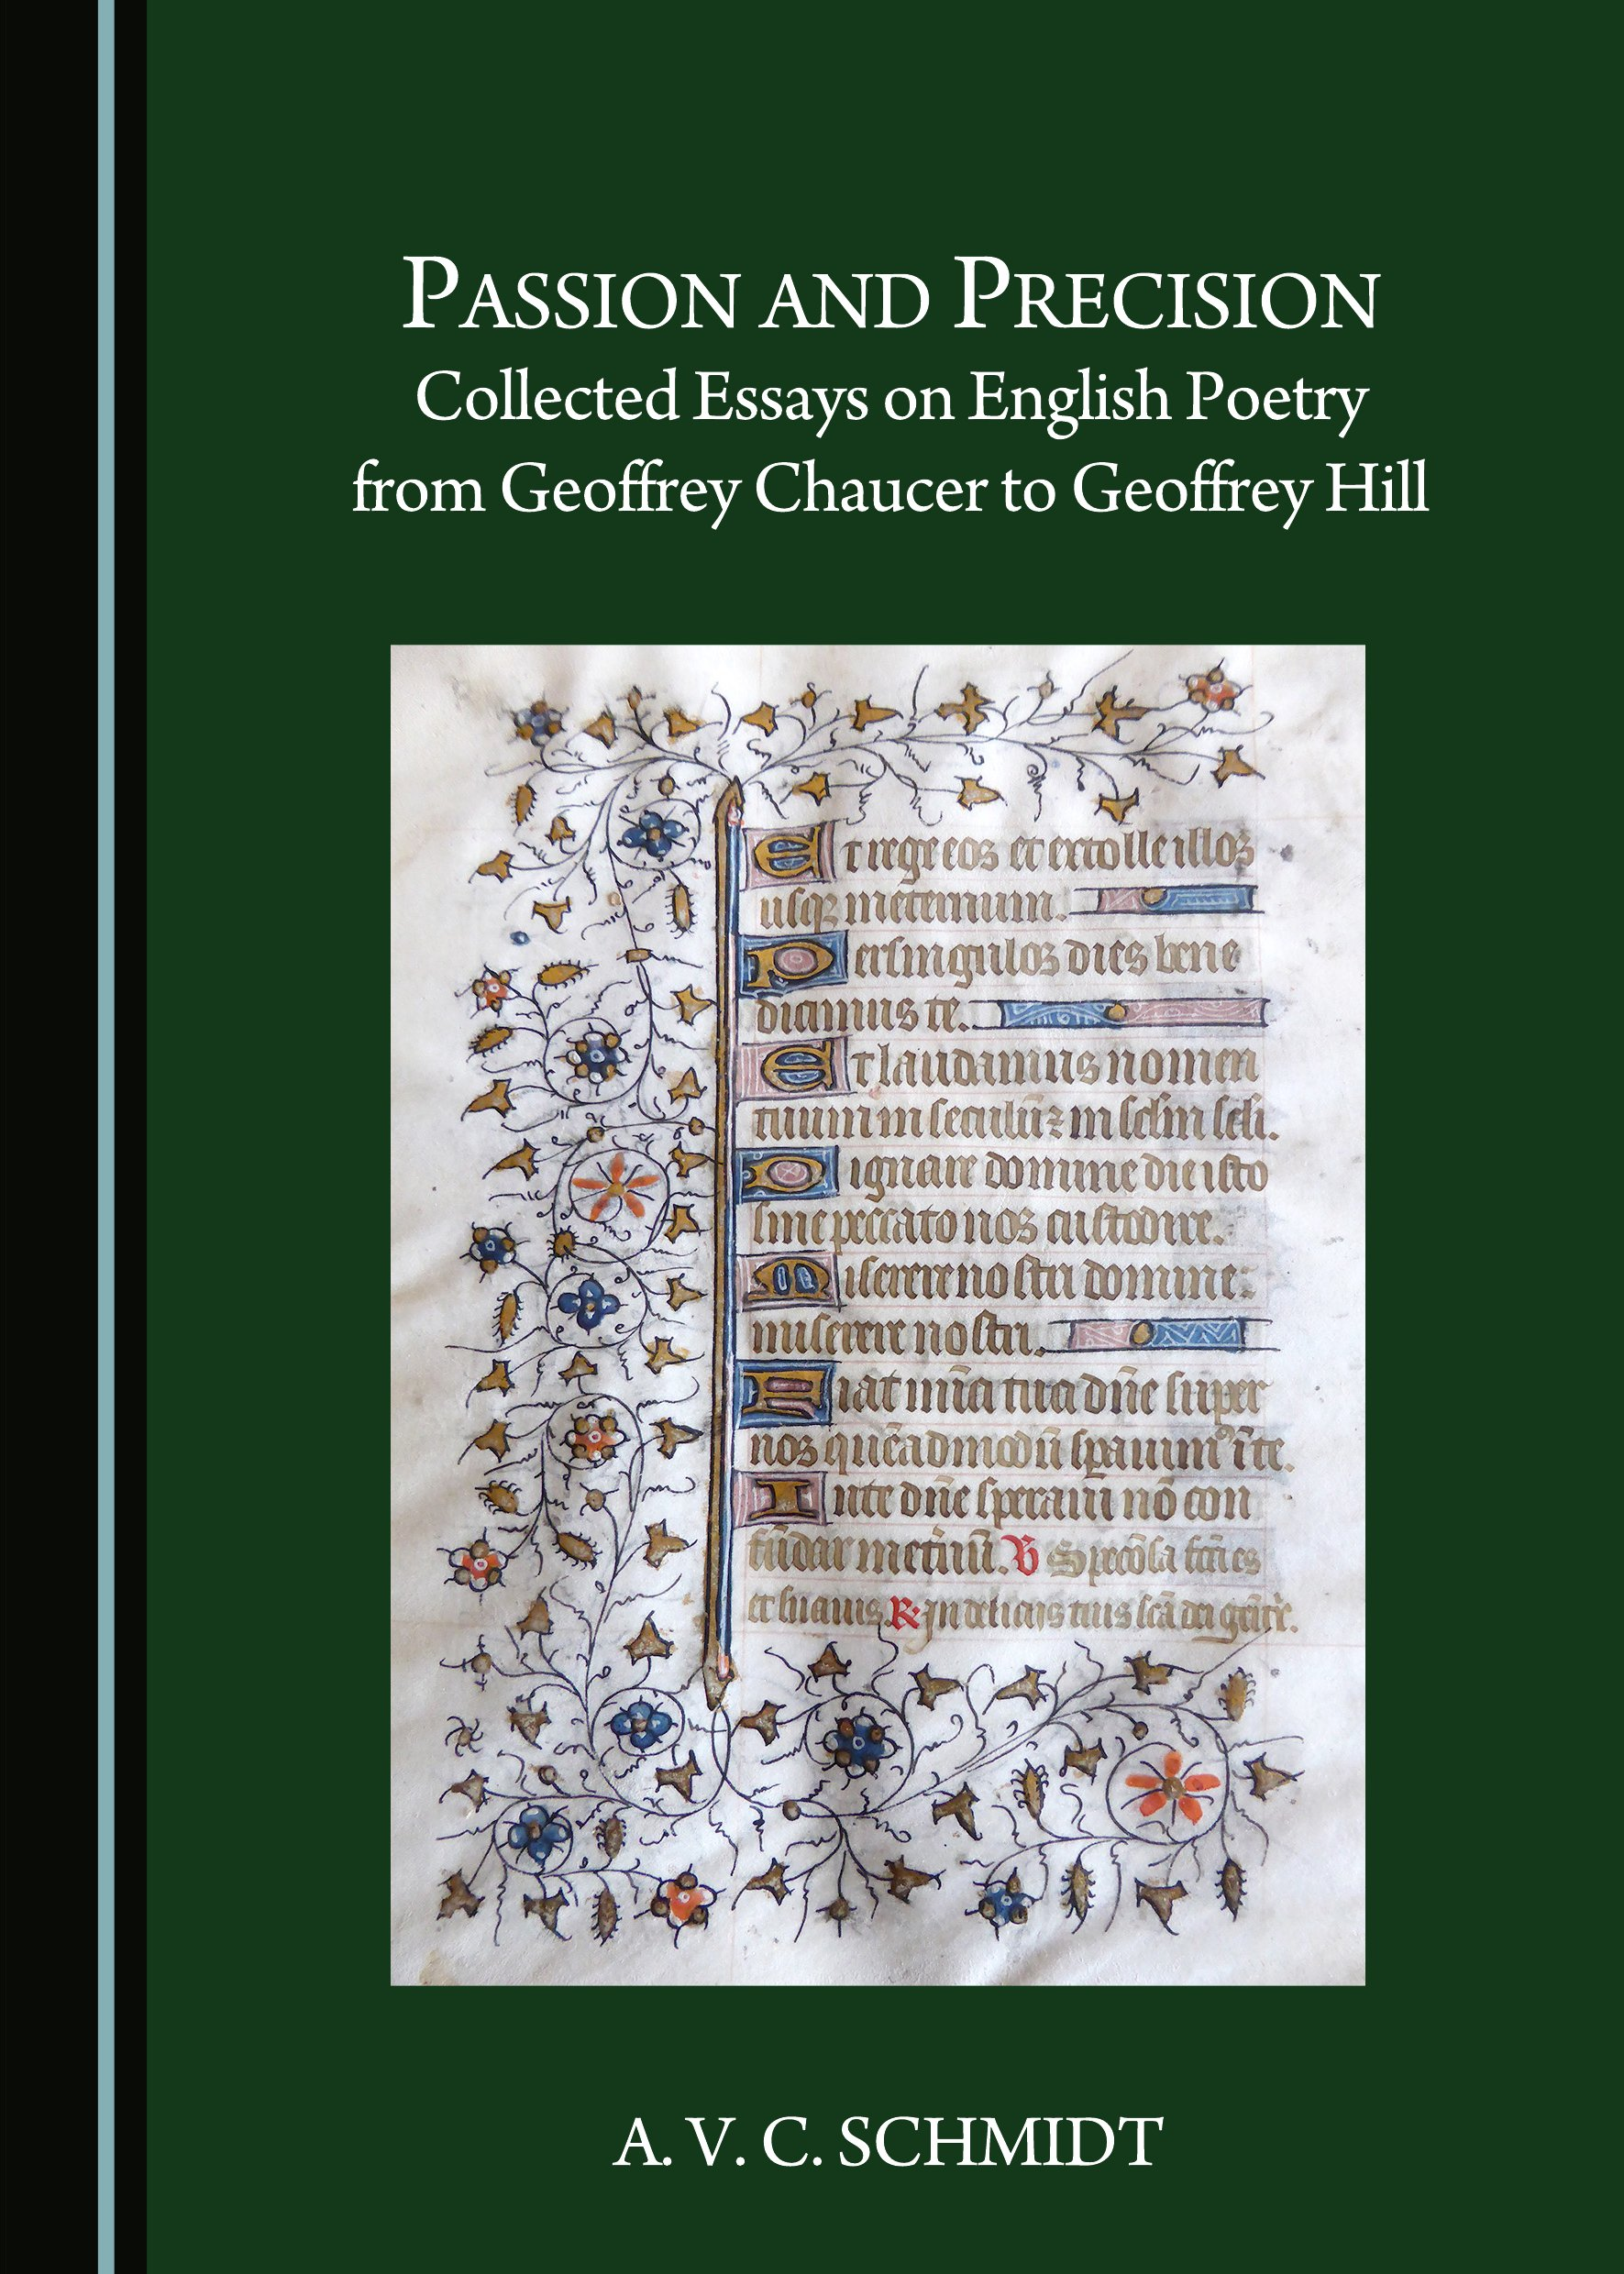 Passion and Precision: Collected Essays on English Poetry from Geoffrey Chaucer to Geoffrey Hill